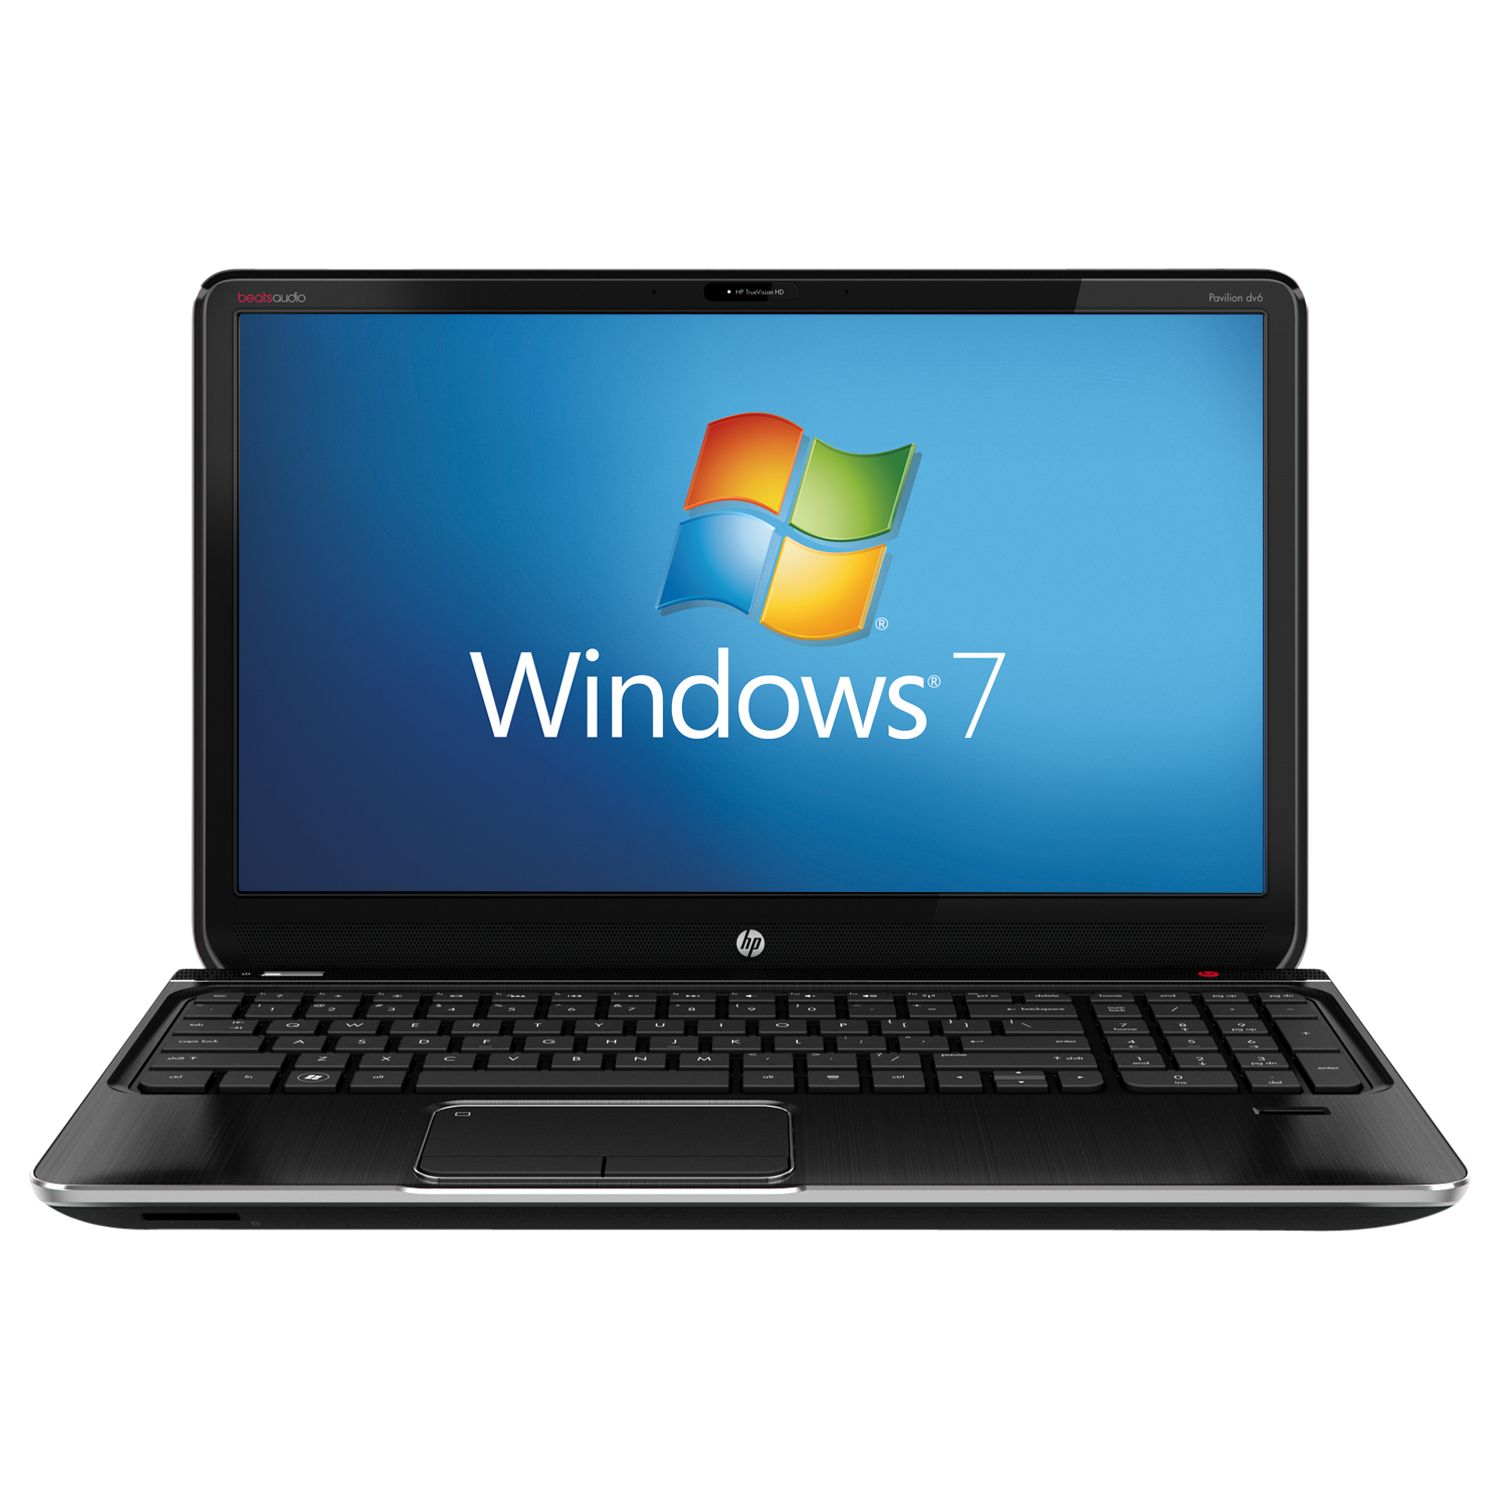 "Hp Pavilion Dv6-7104sa Laptop, Intel Core I7, 2.3ghz, 8gb Ram, 750gb, Beats Audio, 15.6"", Metal Grey"